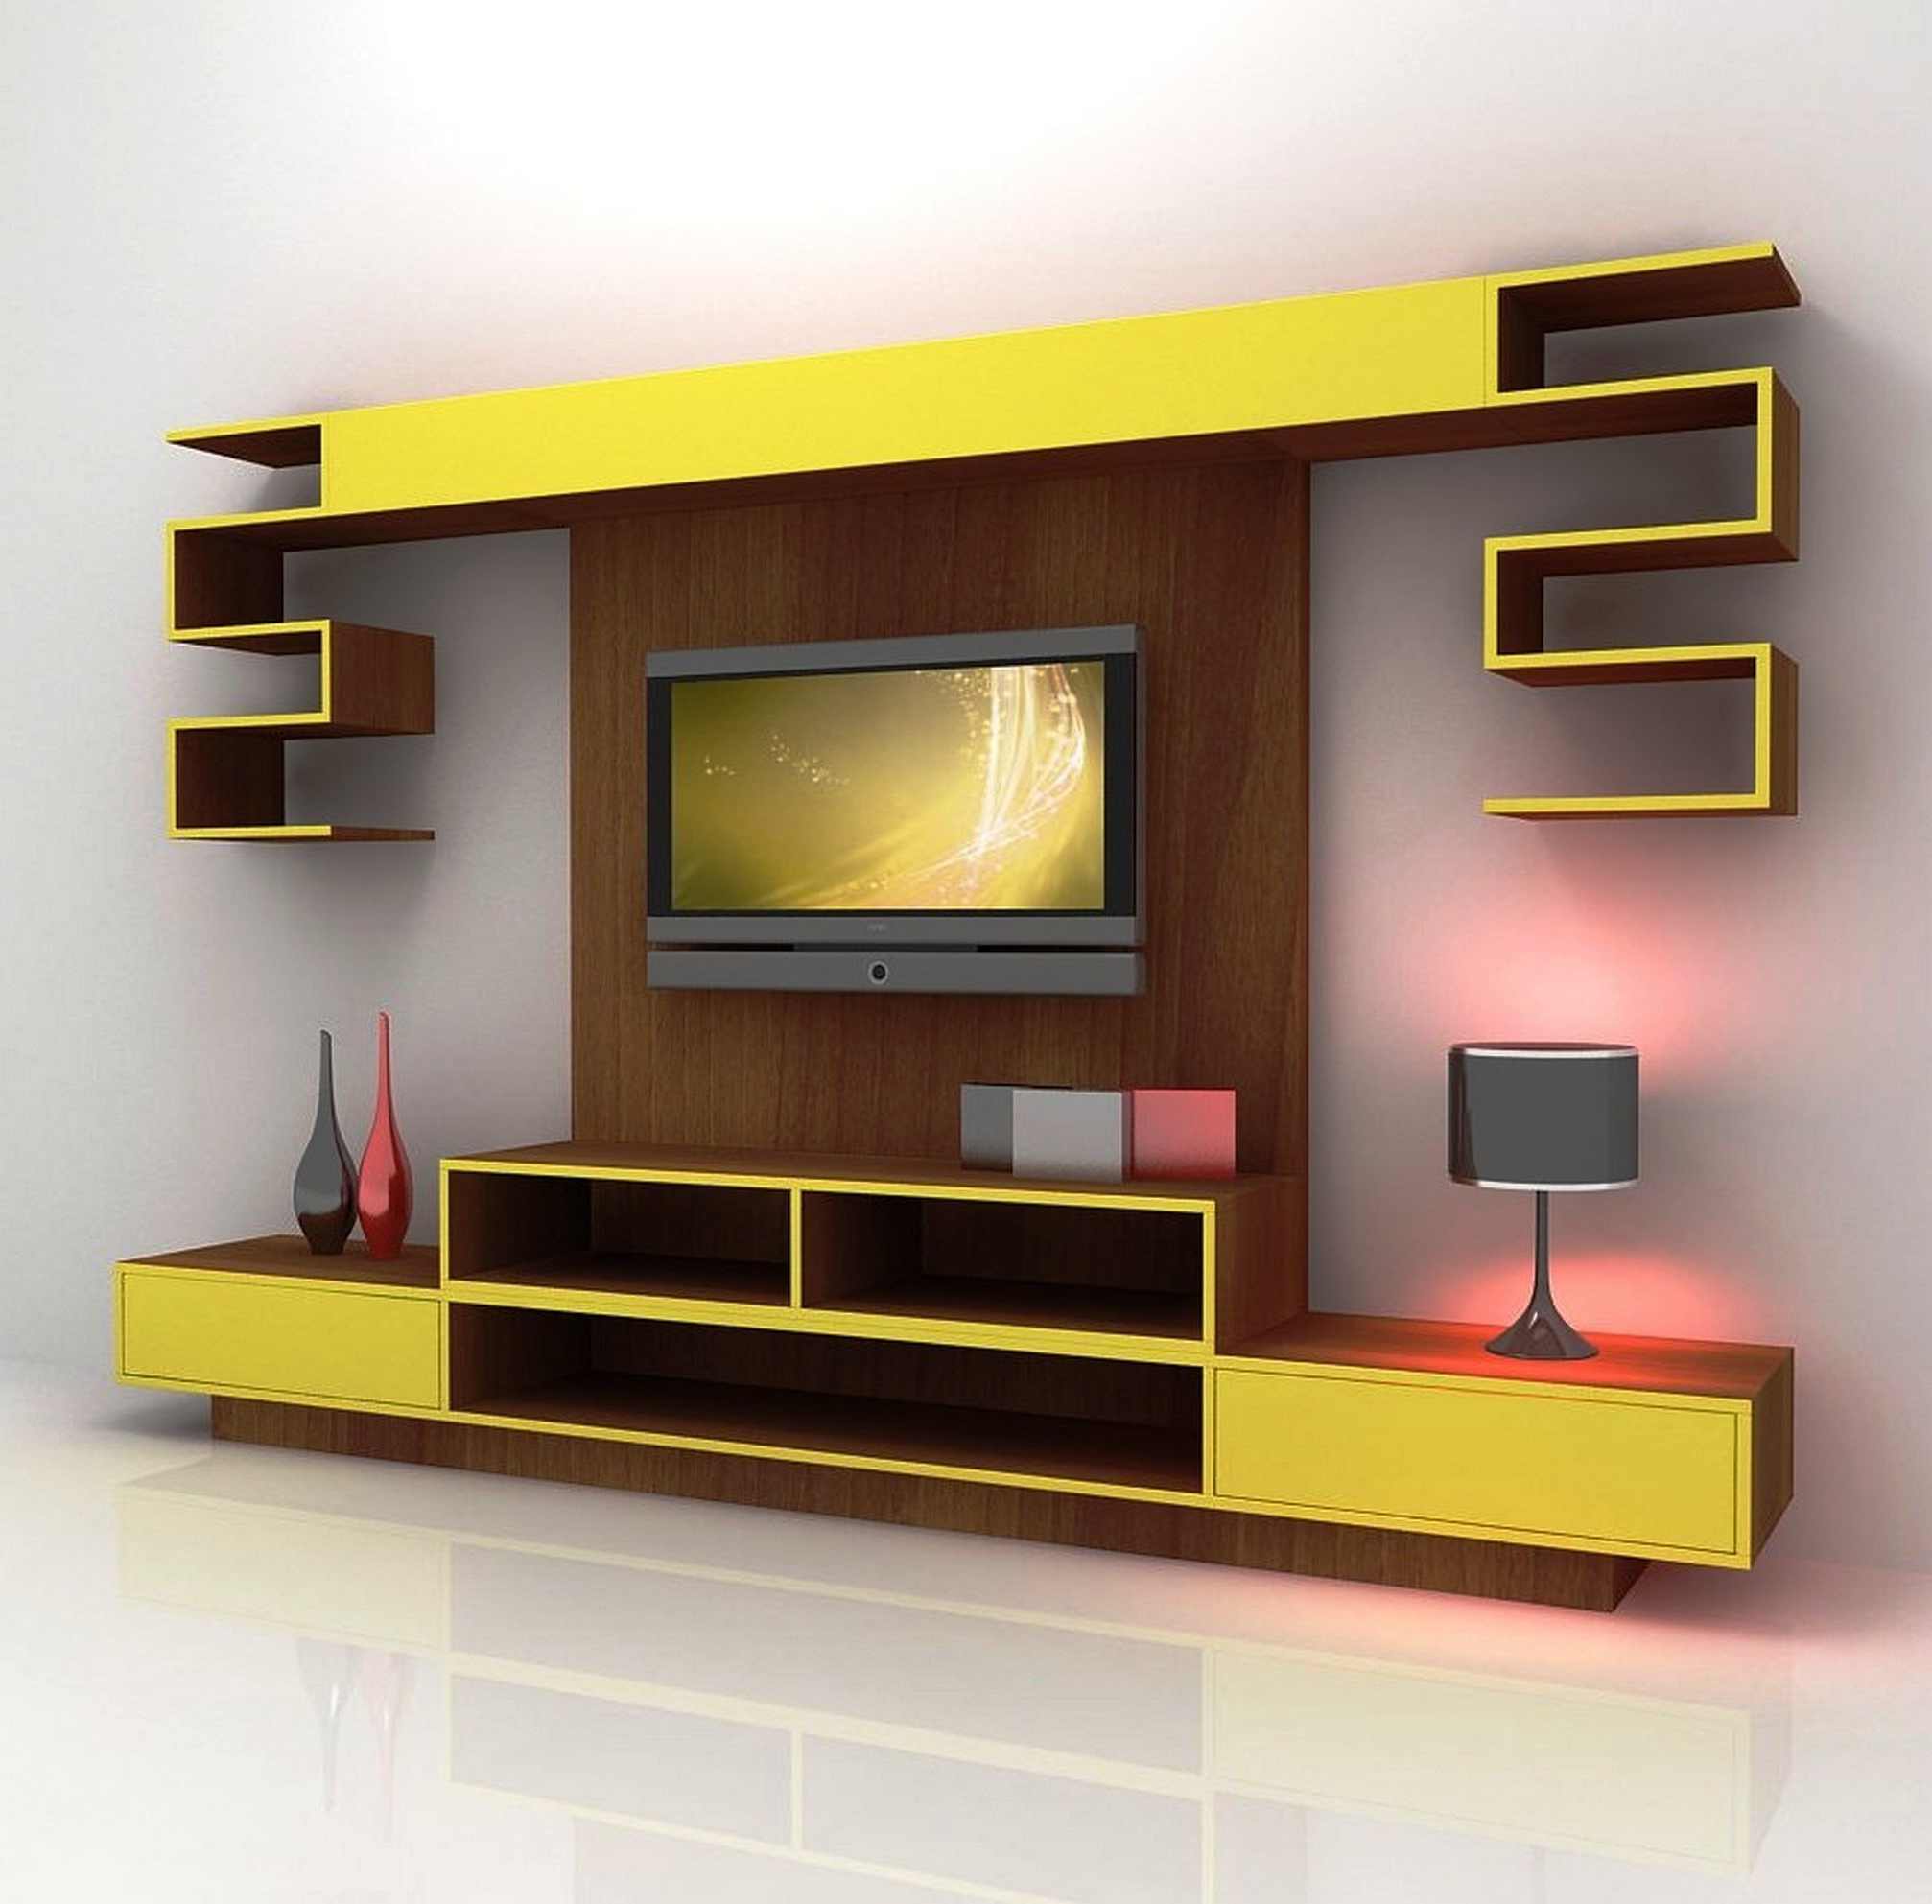 Tv Stand Rustic Wall Mount – Buyouapp Intended For Trendy Wall Mounted Tv Stands With Shelves (View 9 of 20)